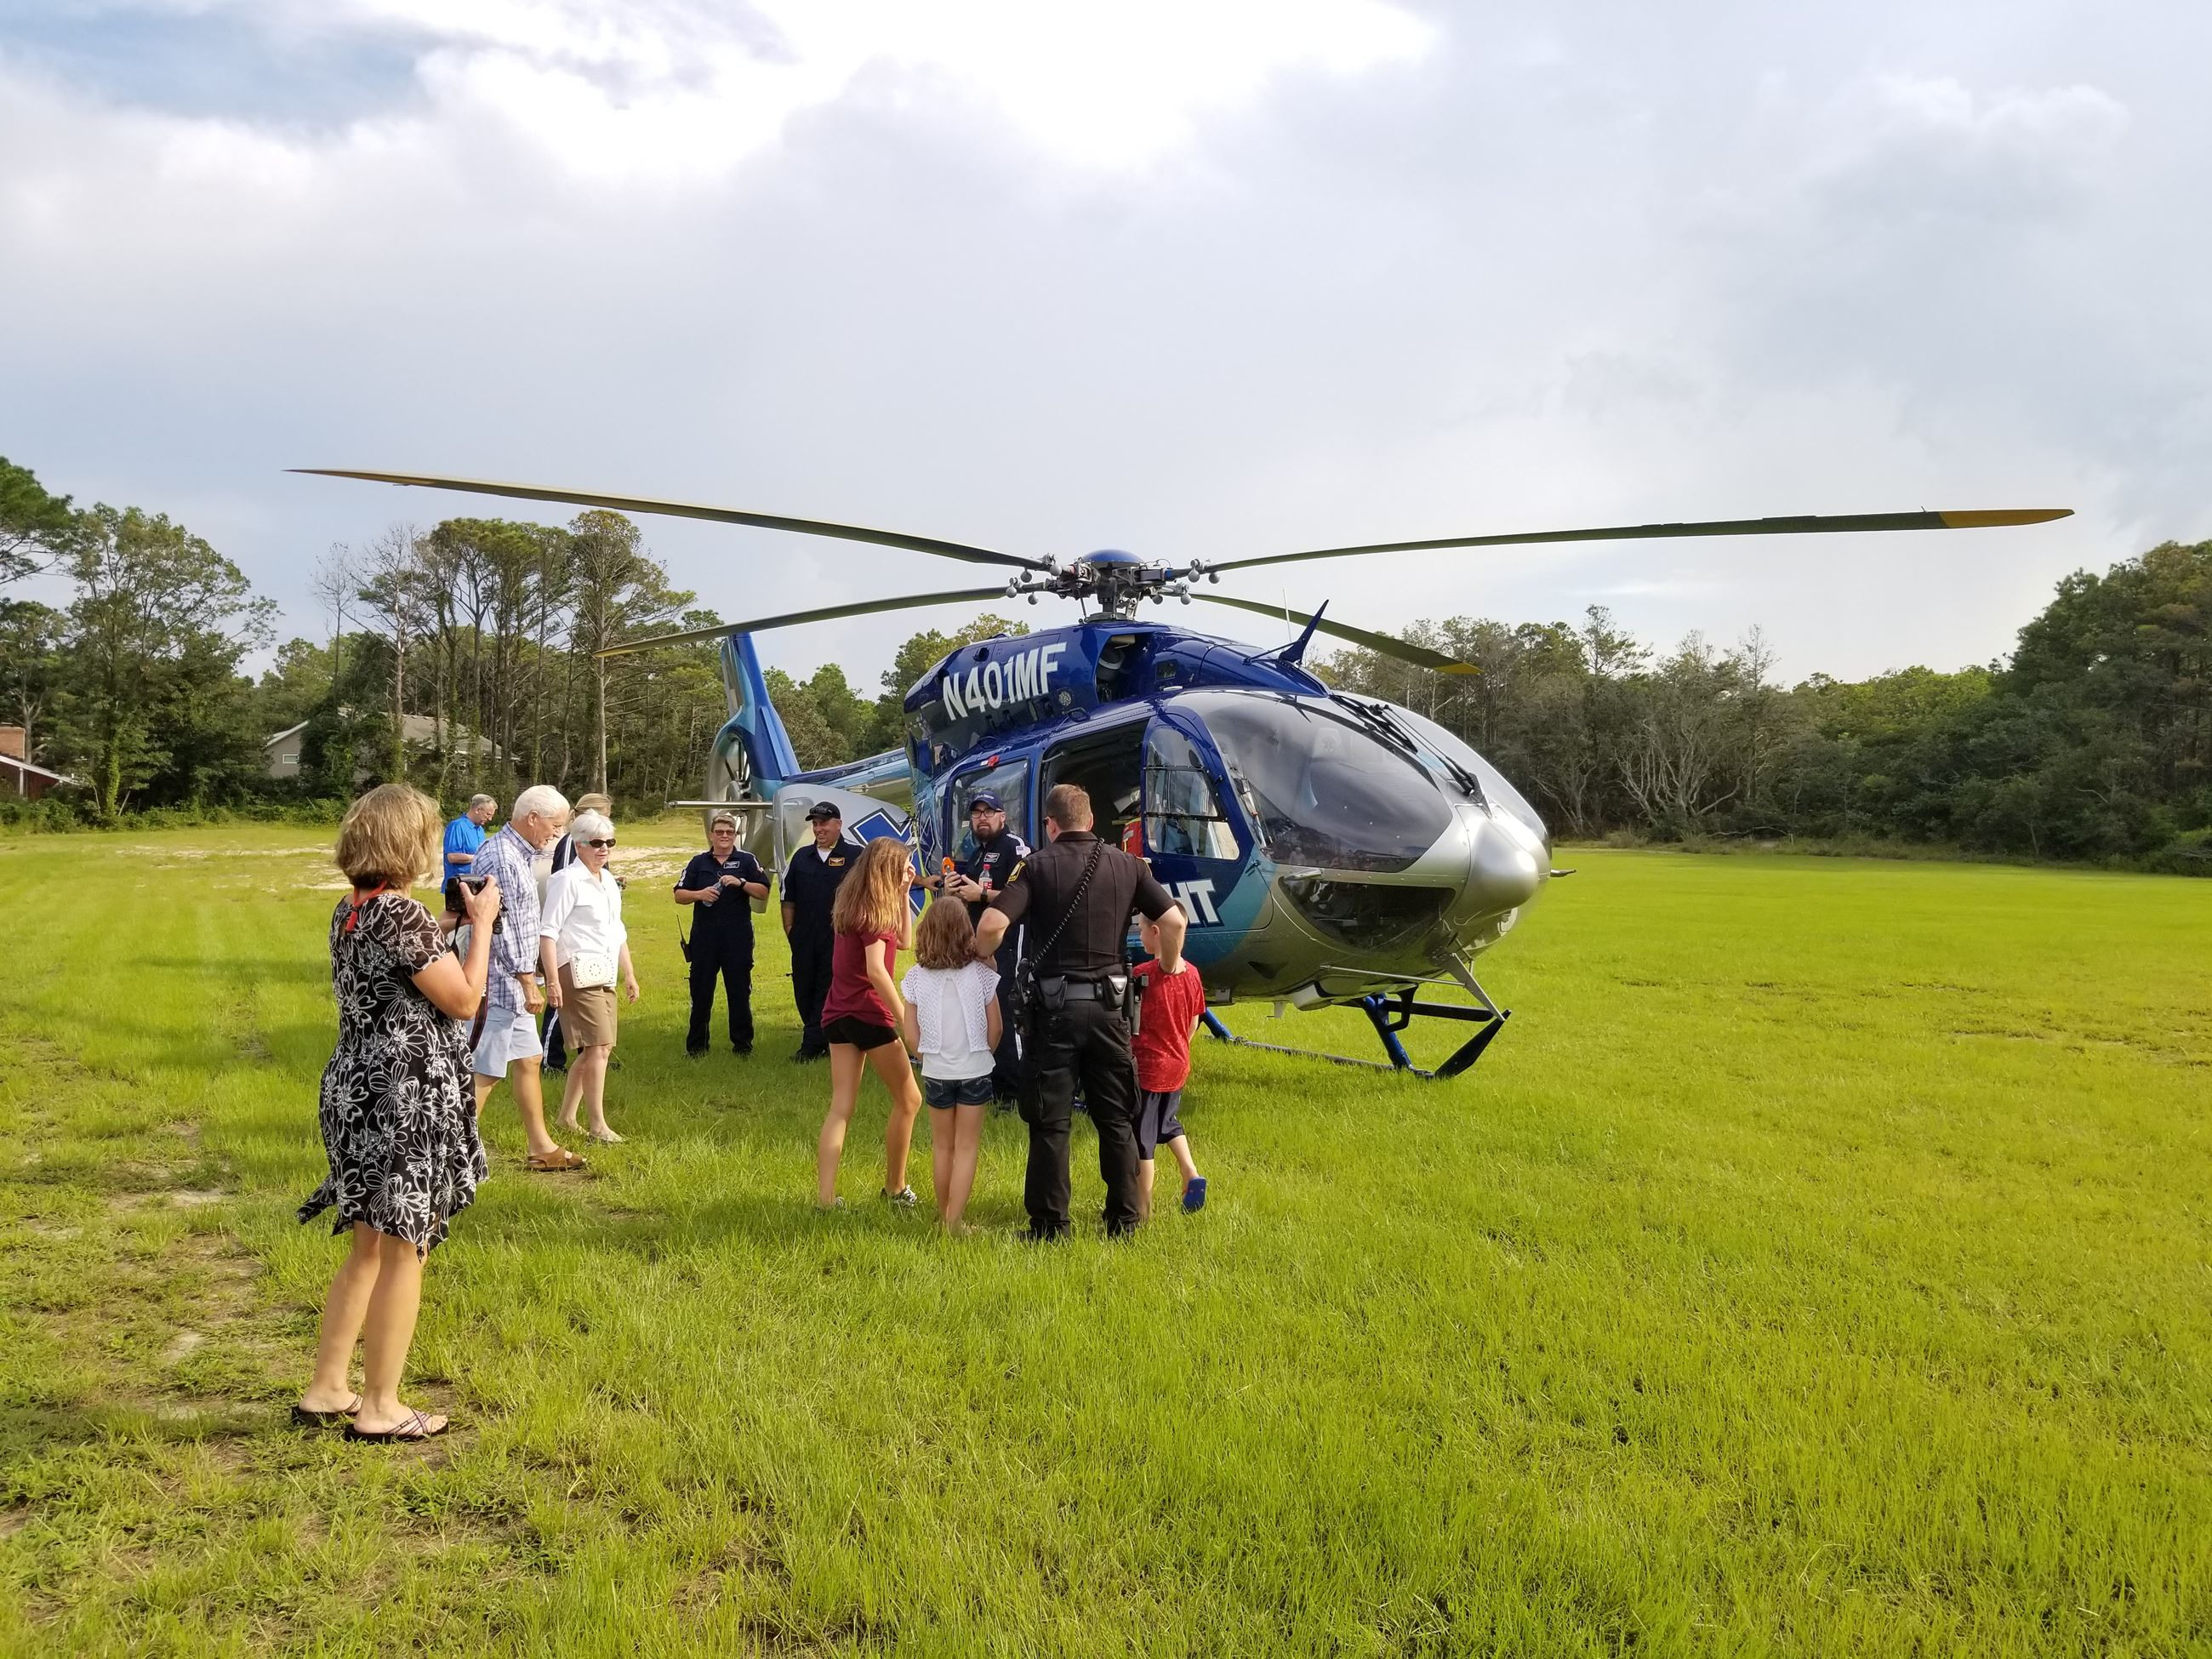 Landed helicopter with people gathered around